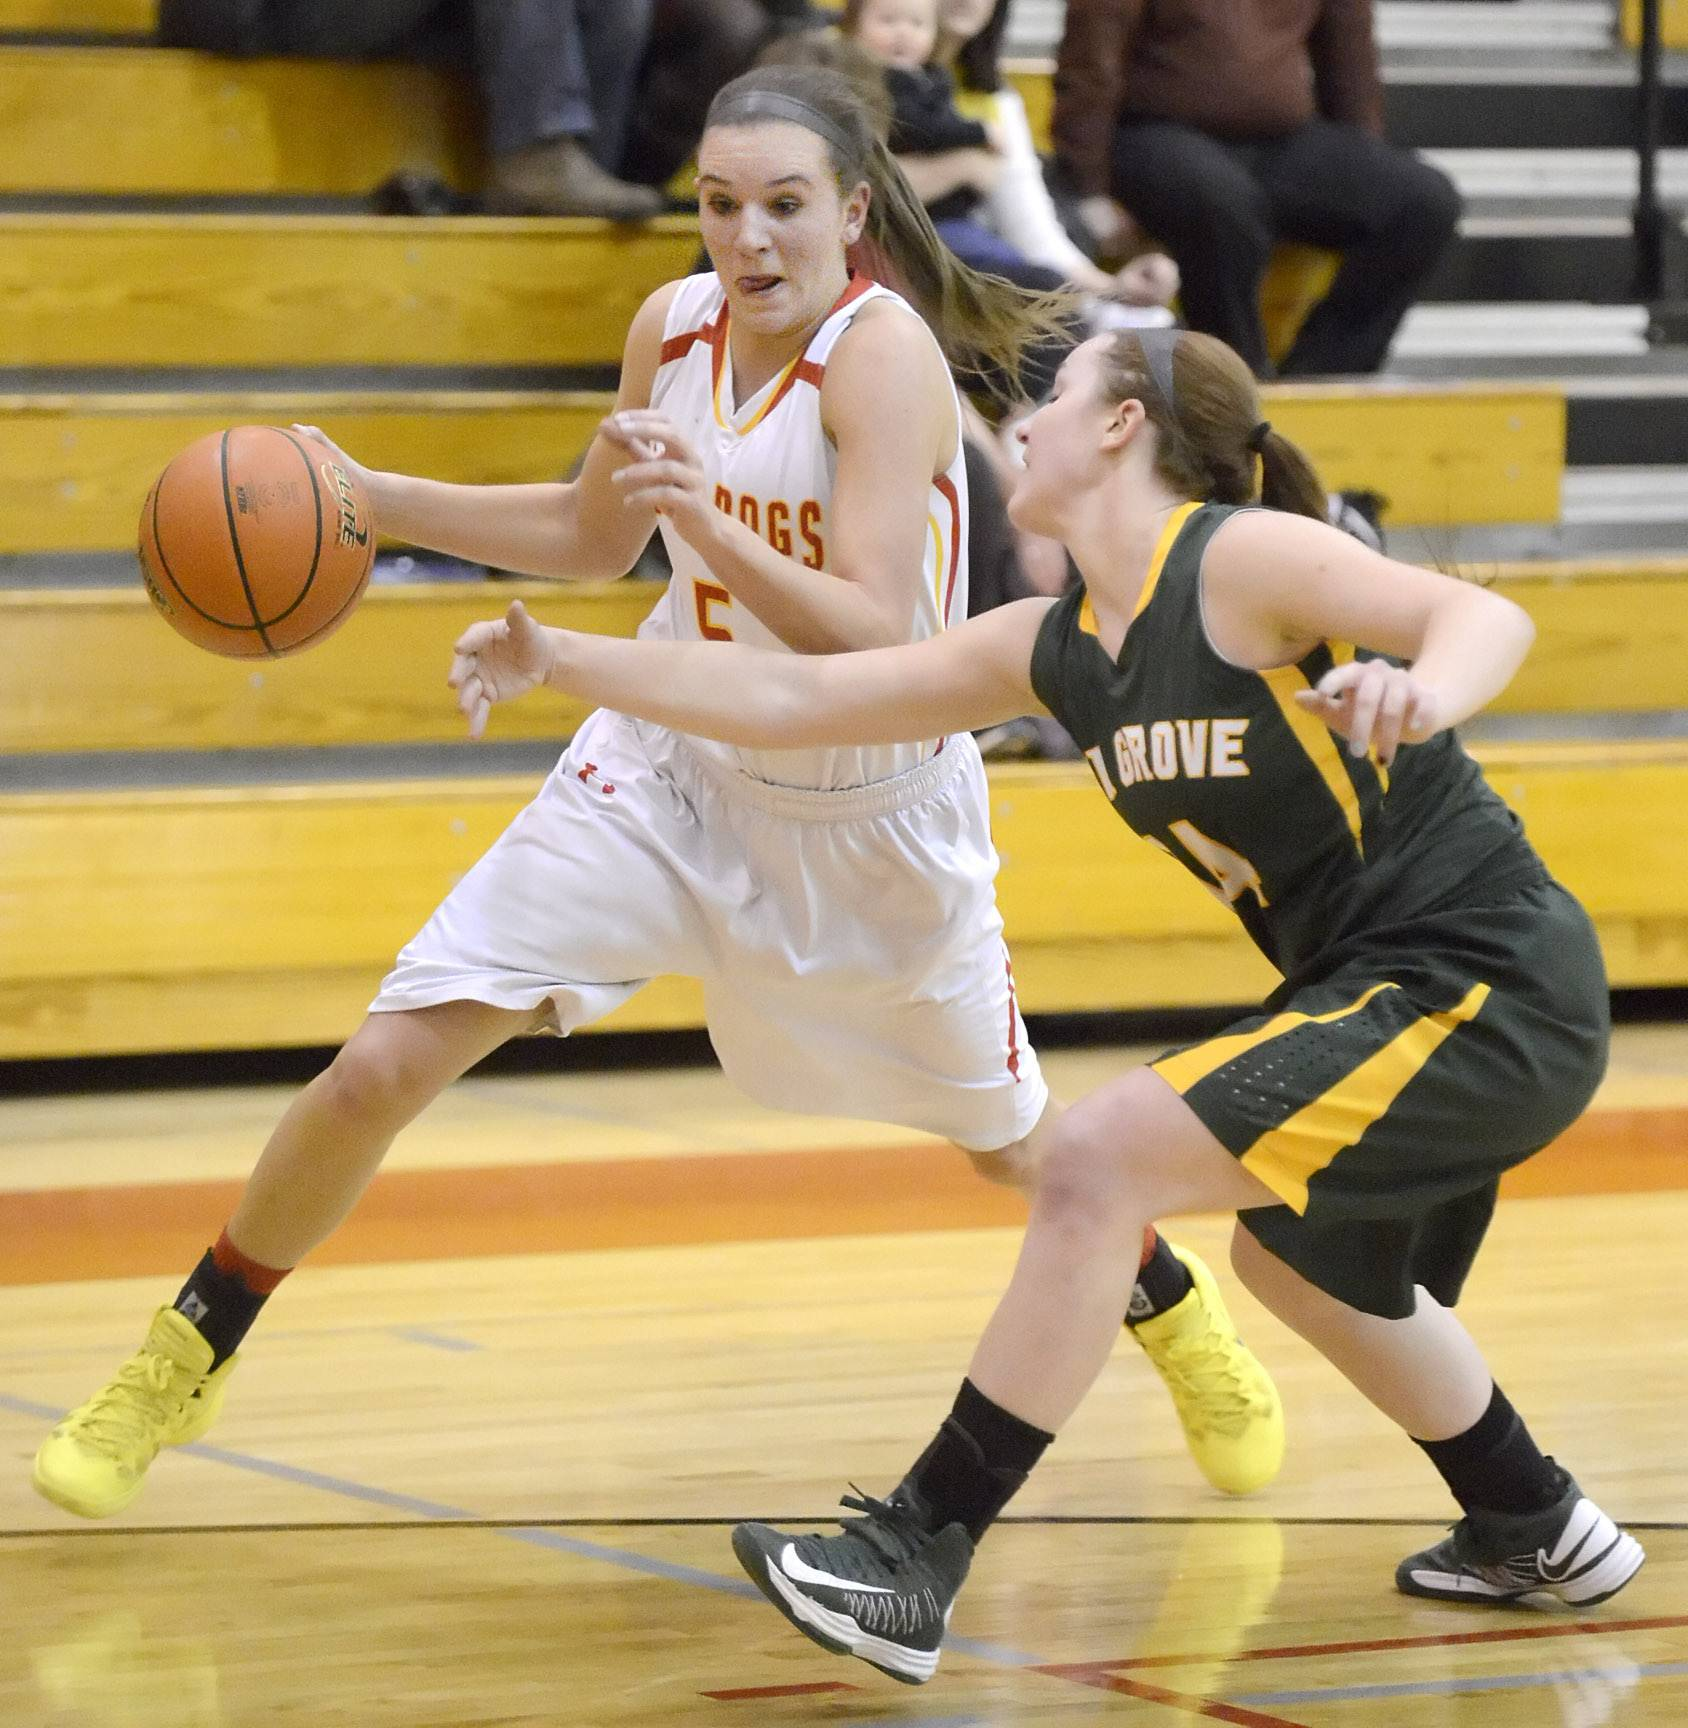 Batavia's Liza Fruendt dribbles around Elk Grove's Taylor Brown in the first quarter.